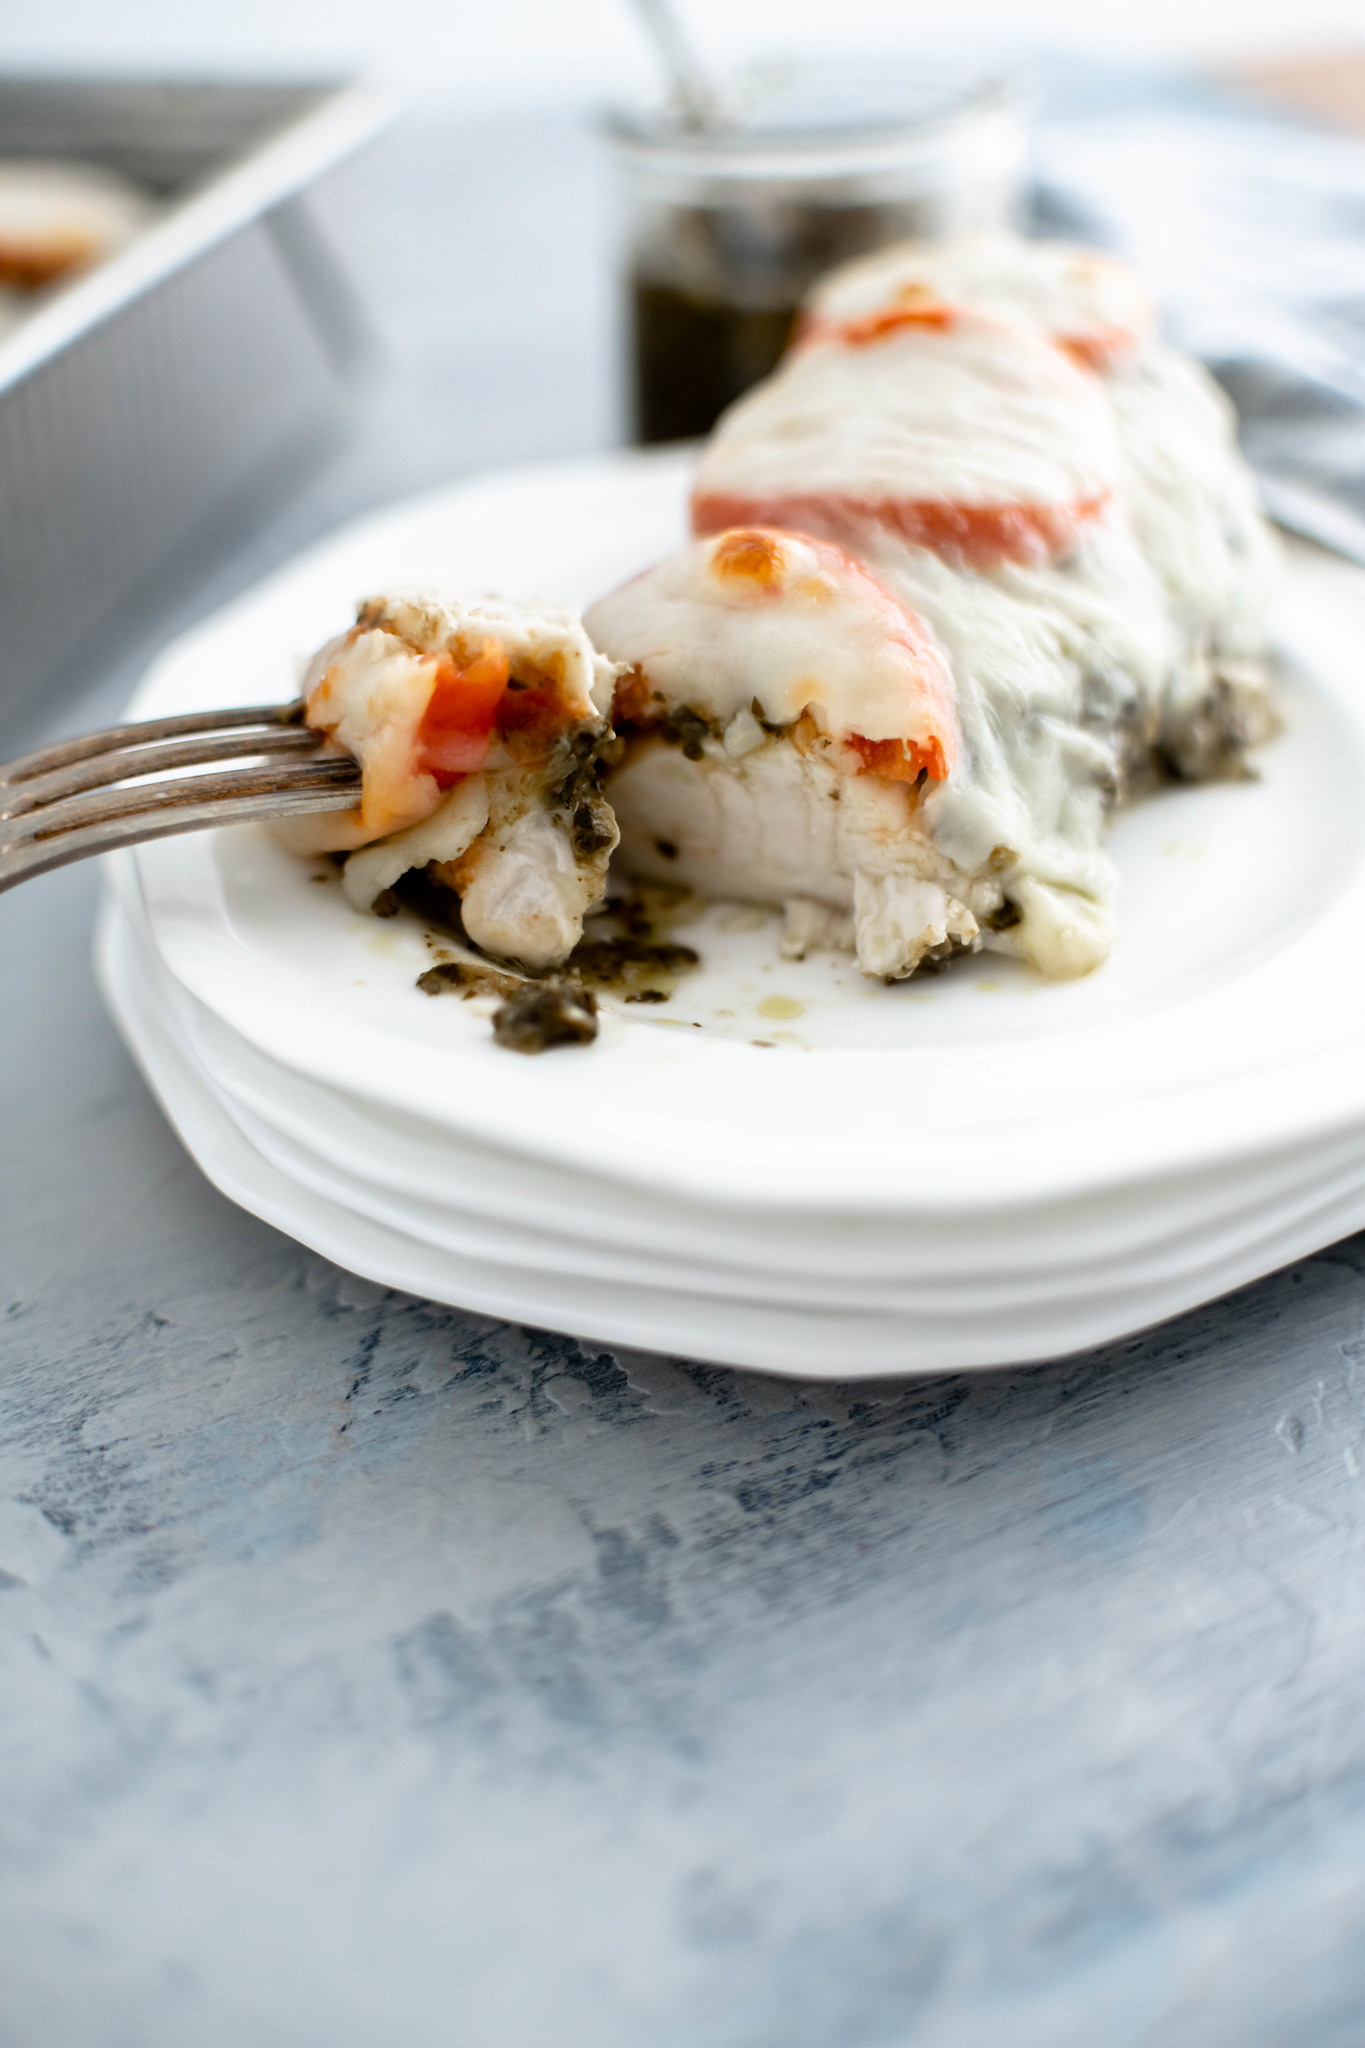 One pesto baked chicken breast on a white round plate with piece cut off on fork.